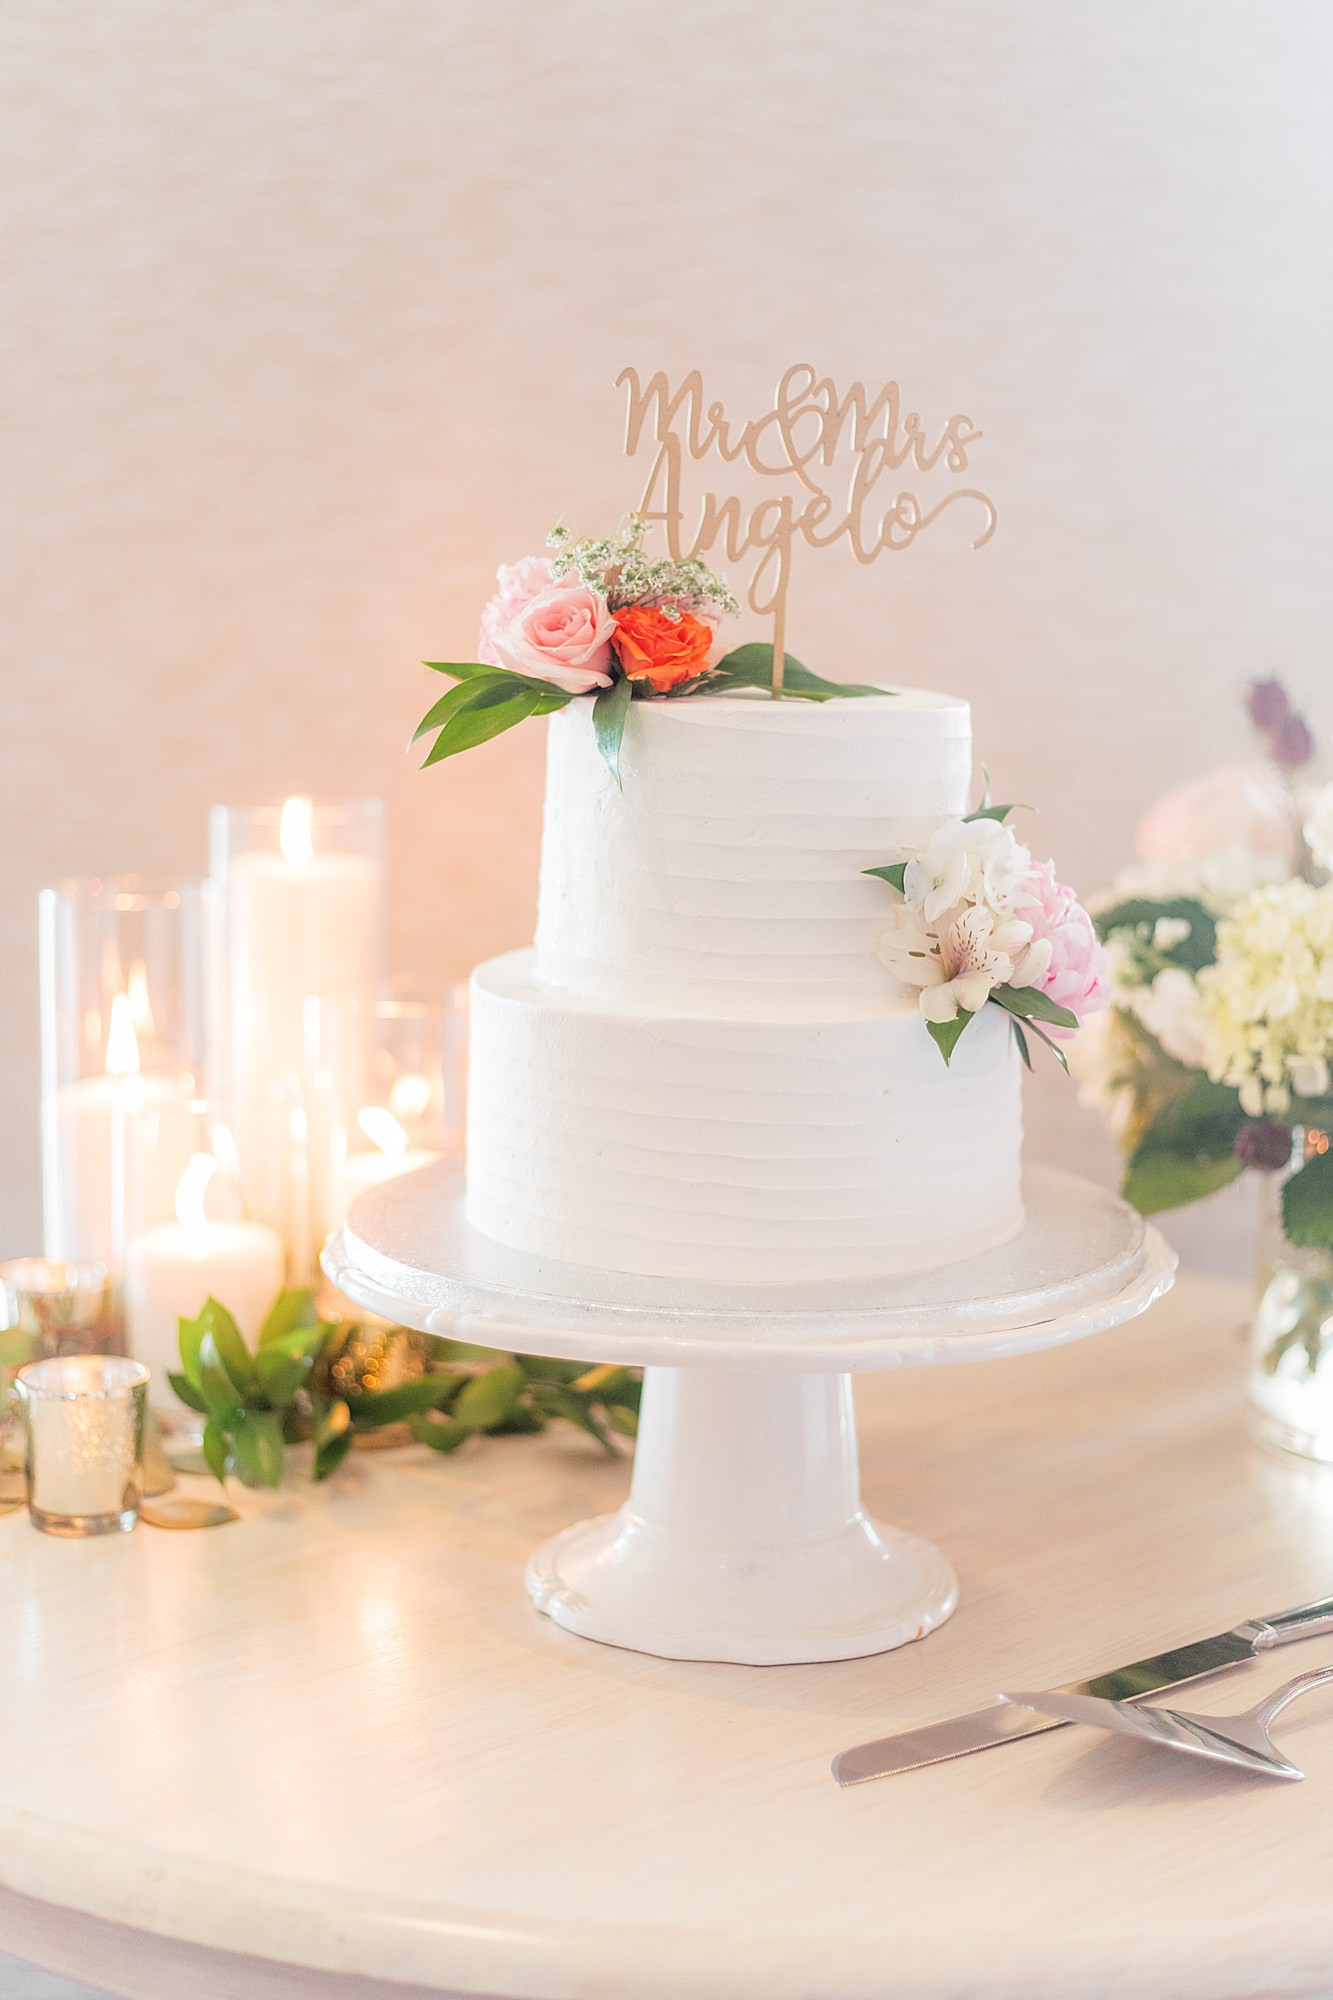 Natural and Vibrant Wedding Photography at the Reeds in Stone Harbor NJ by Magdalena Studios 0055